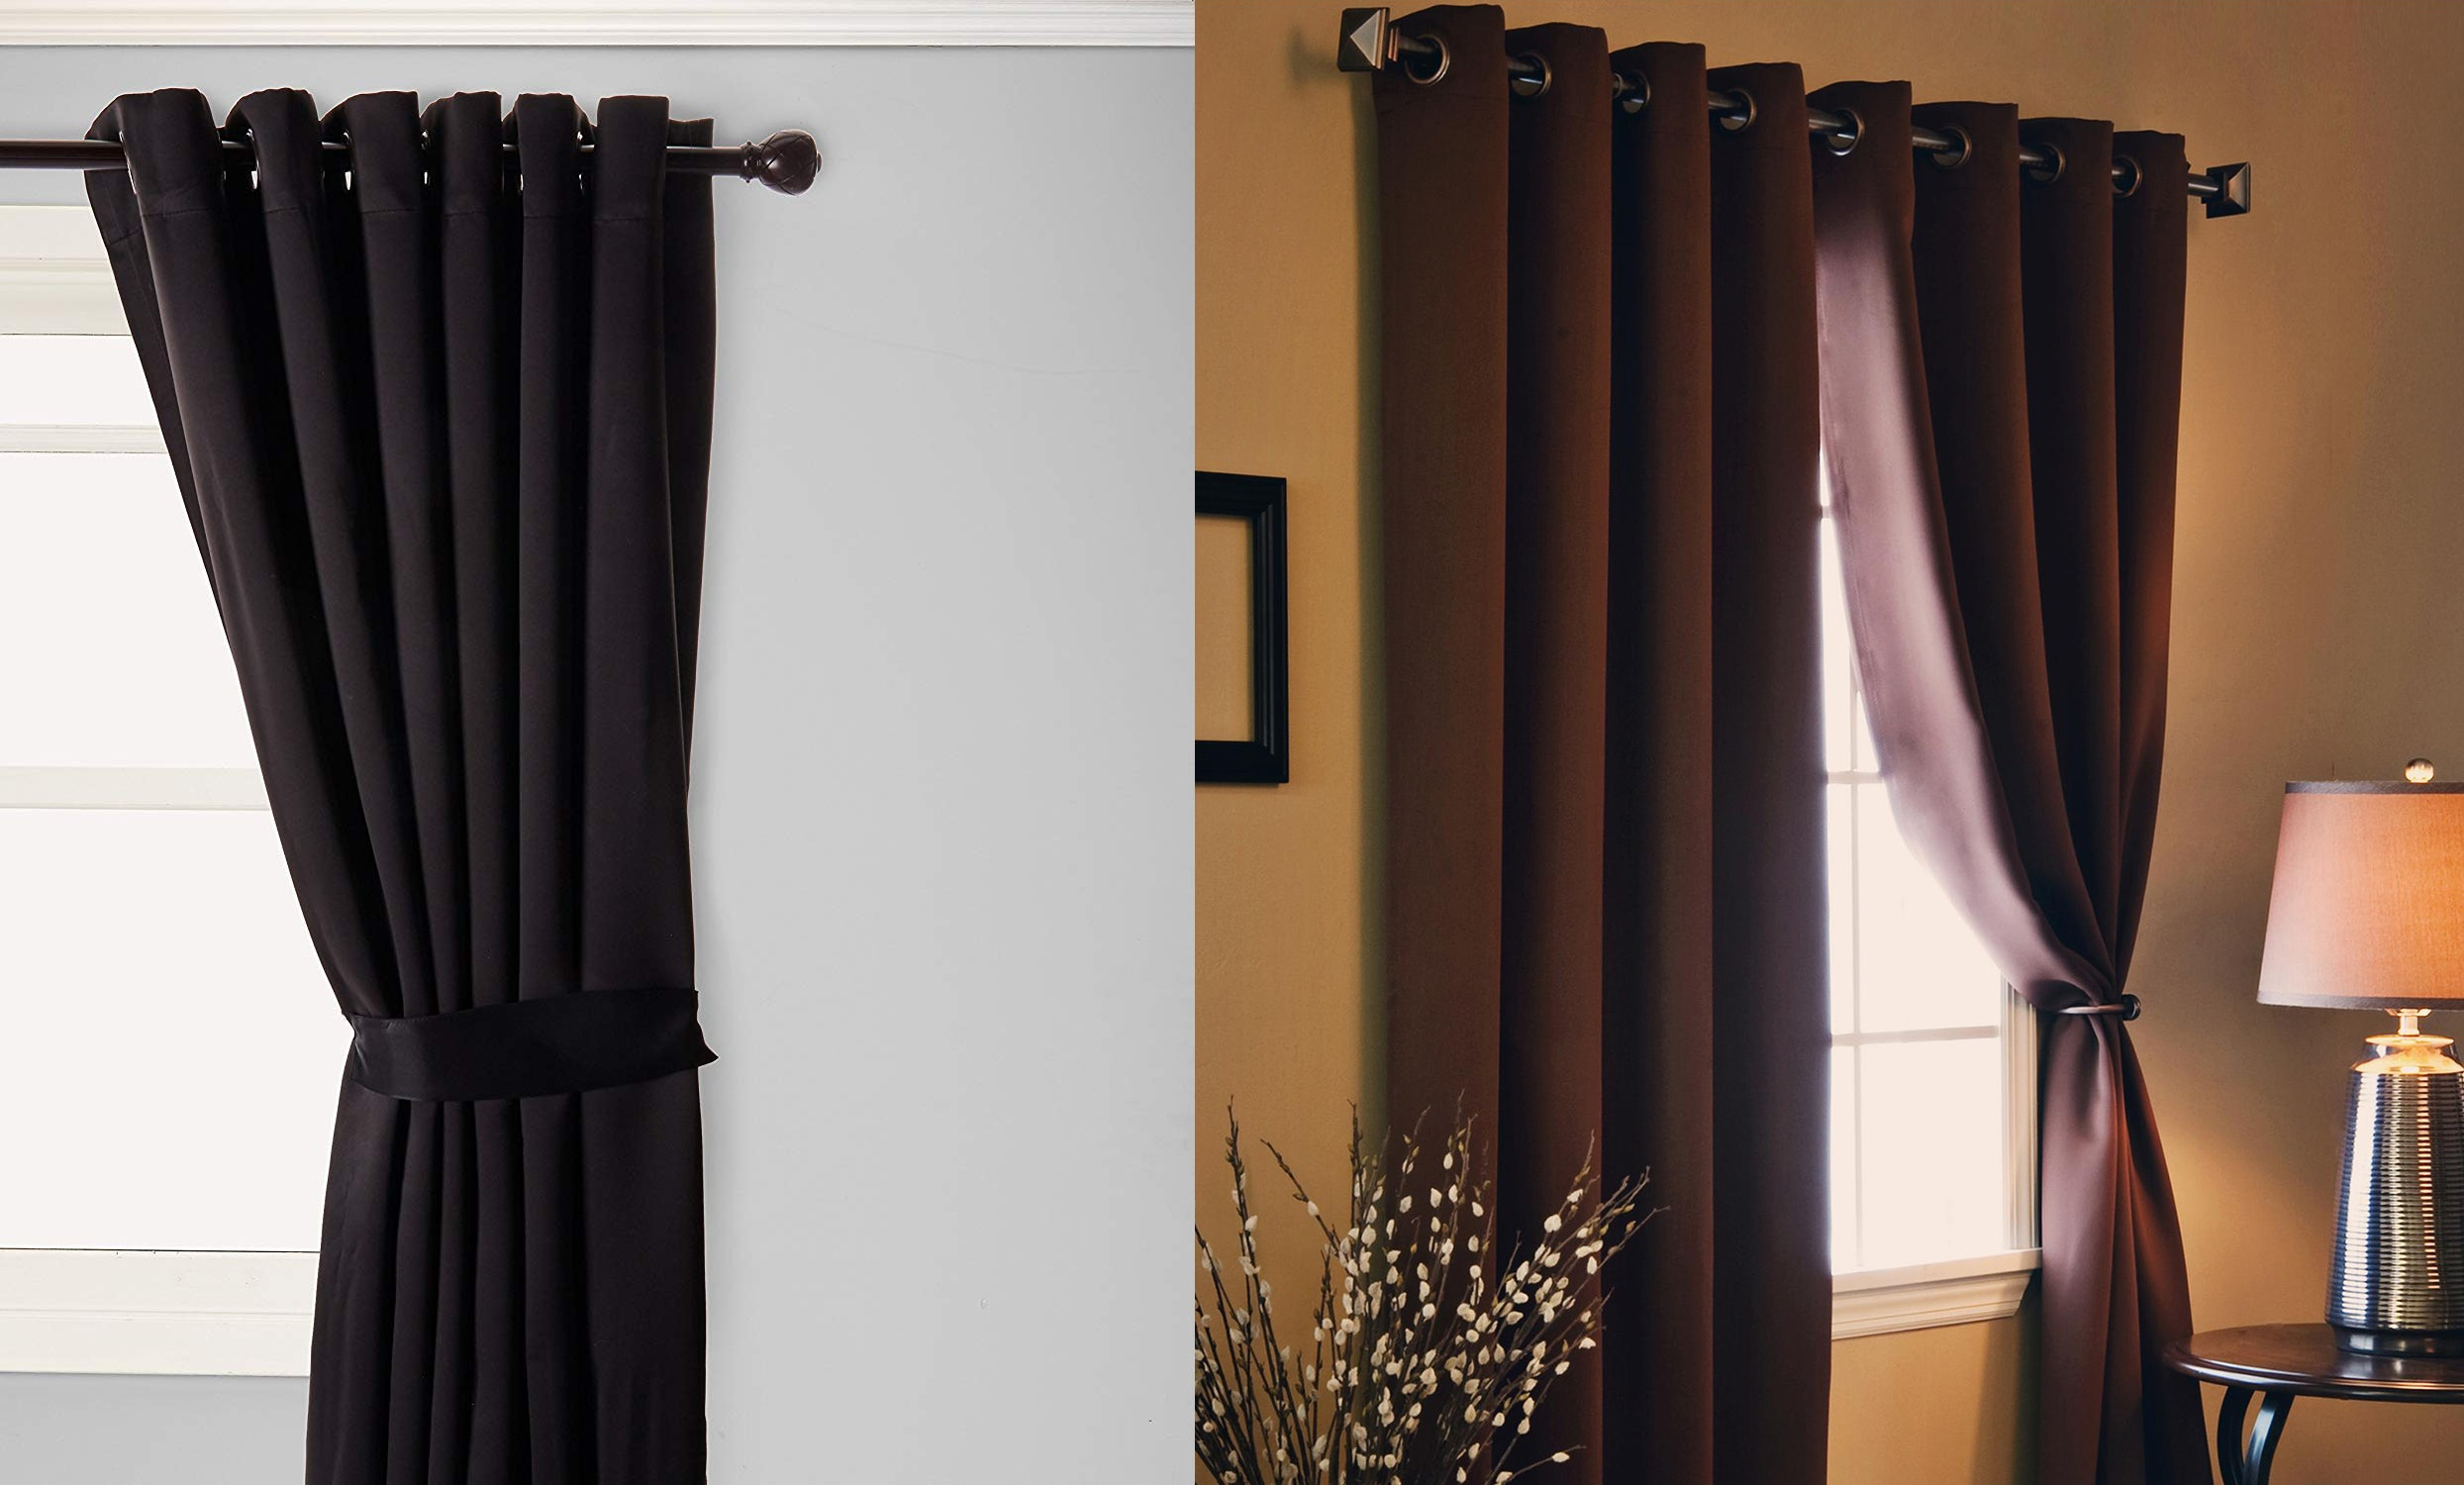 Window Coverings To Keep Heat Out The 3 Best Thermal Curtains To Keep Heat Out